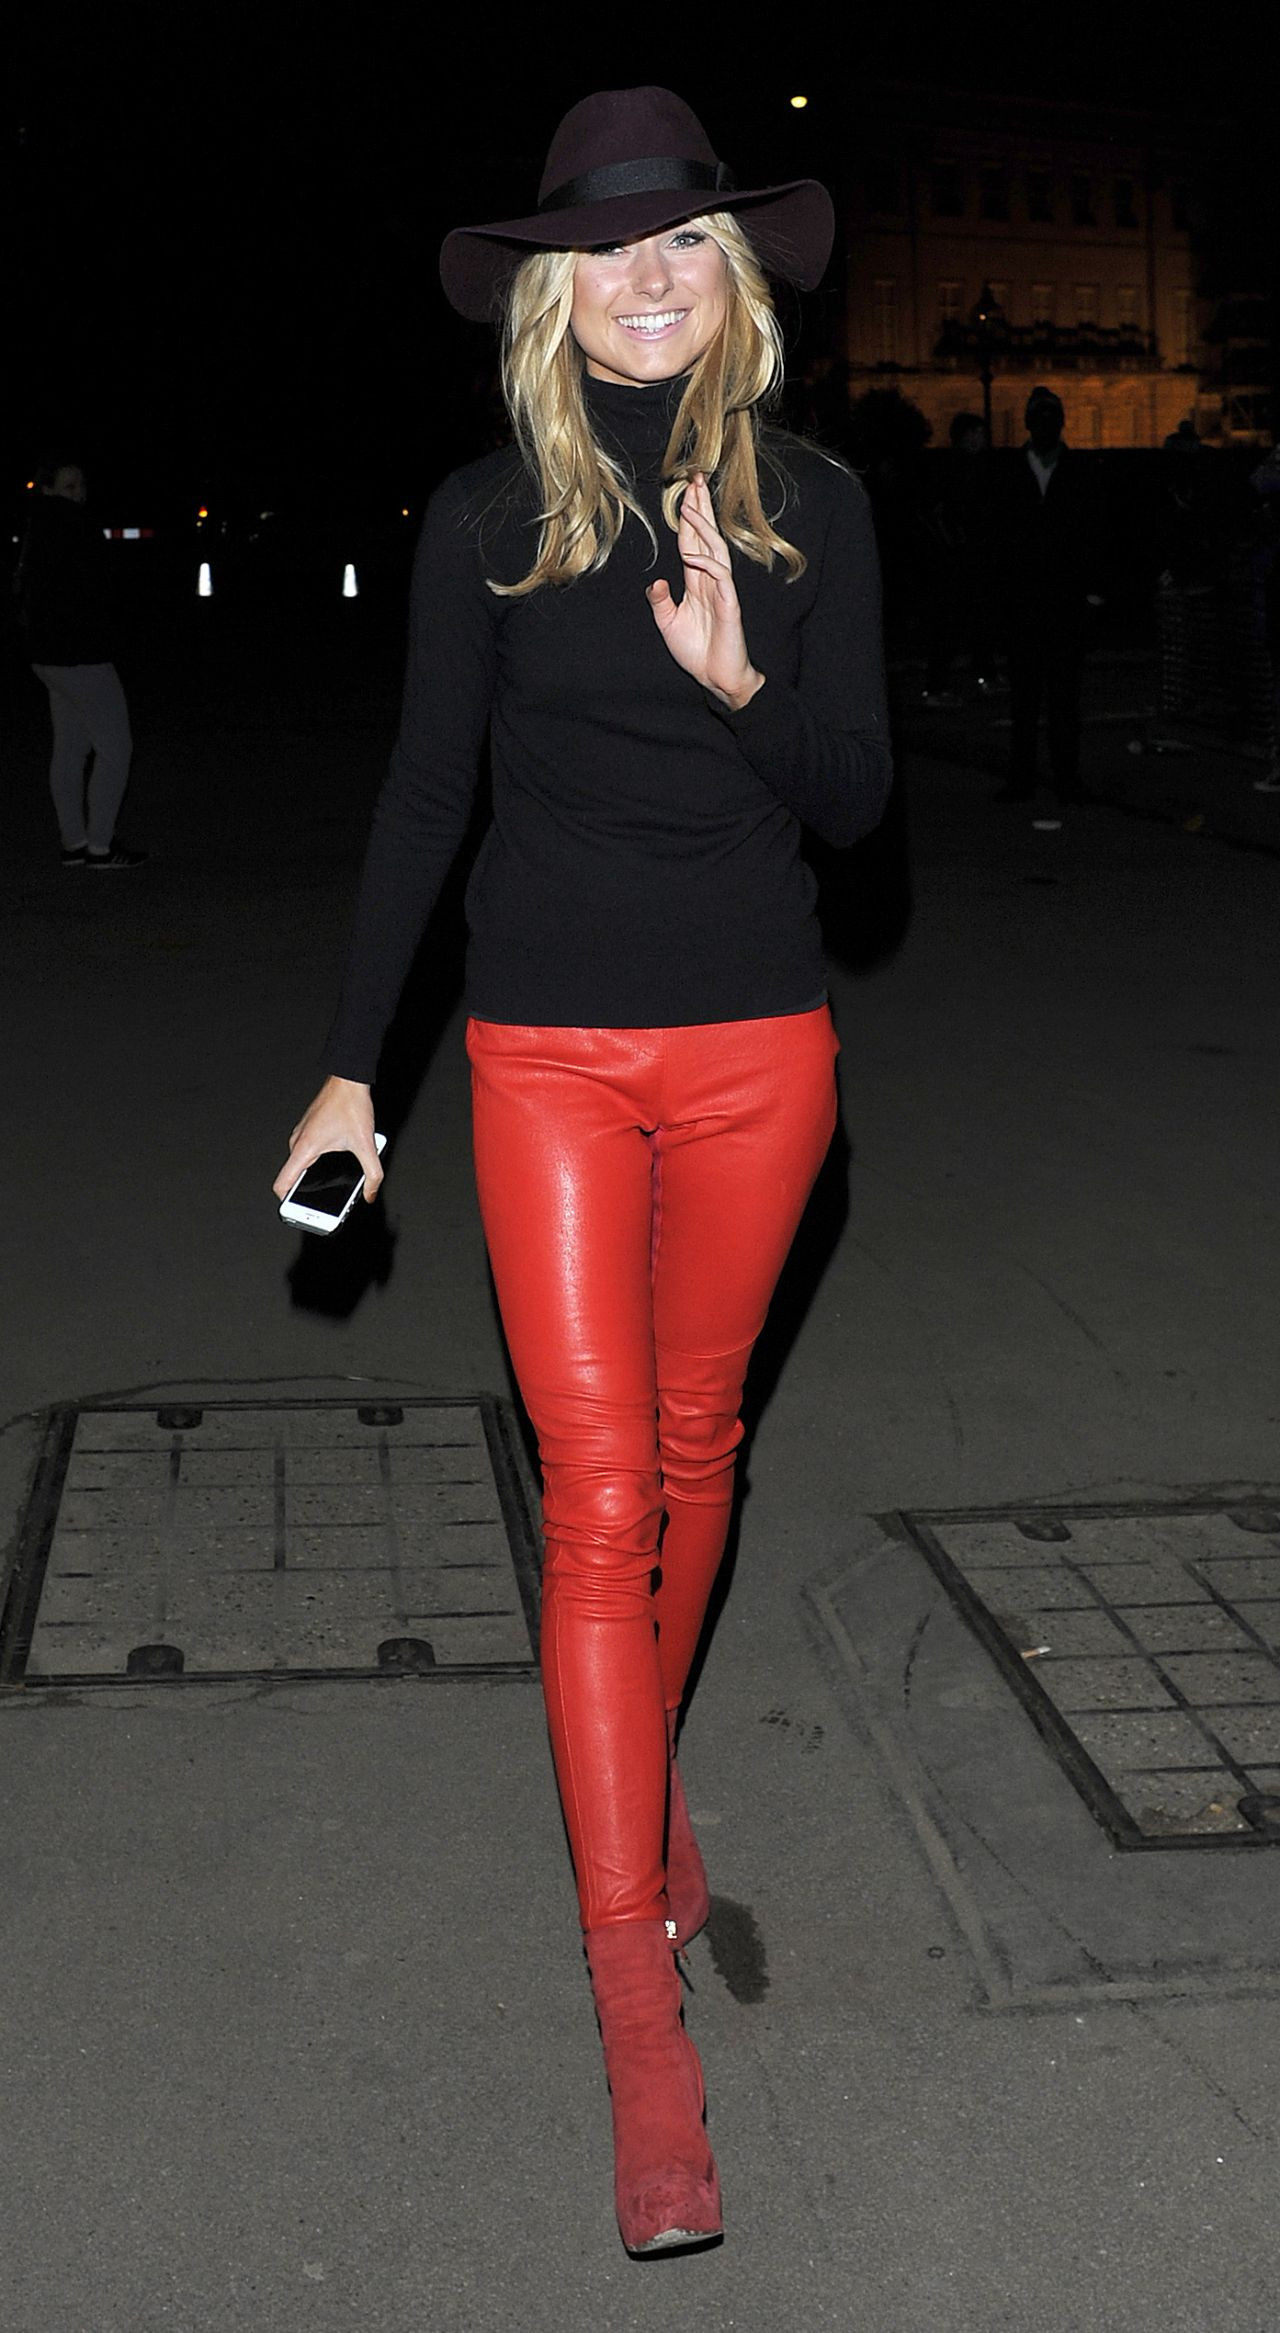 Kimberley Garner In Red Leather Pants At Winter